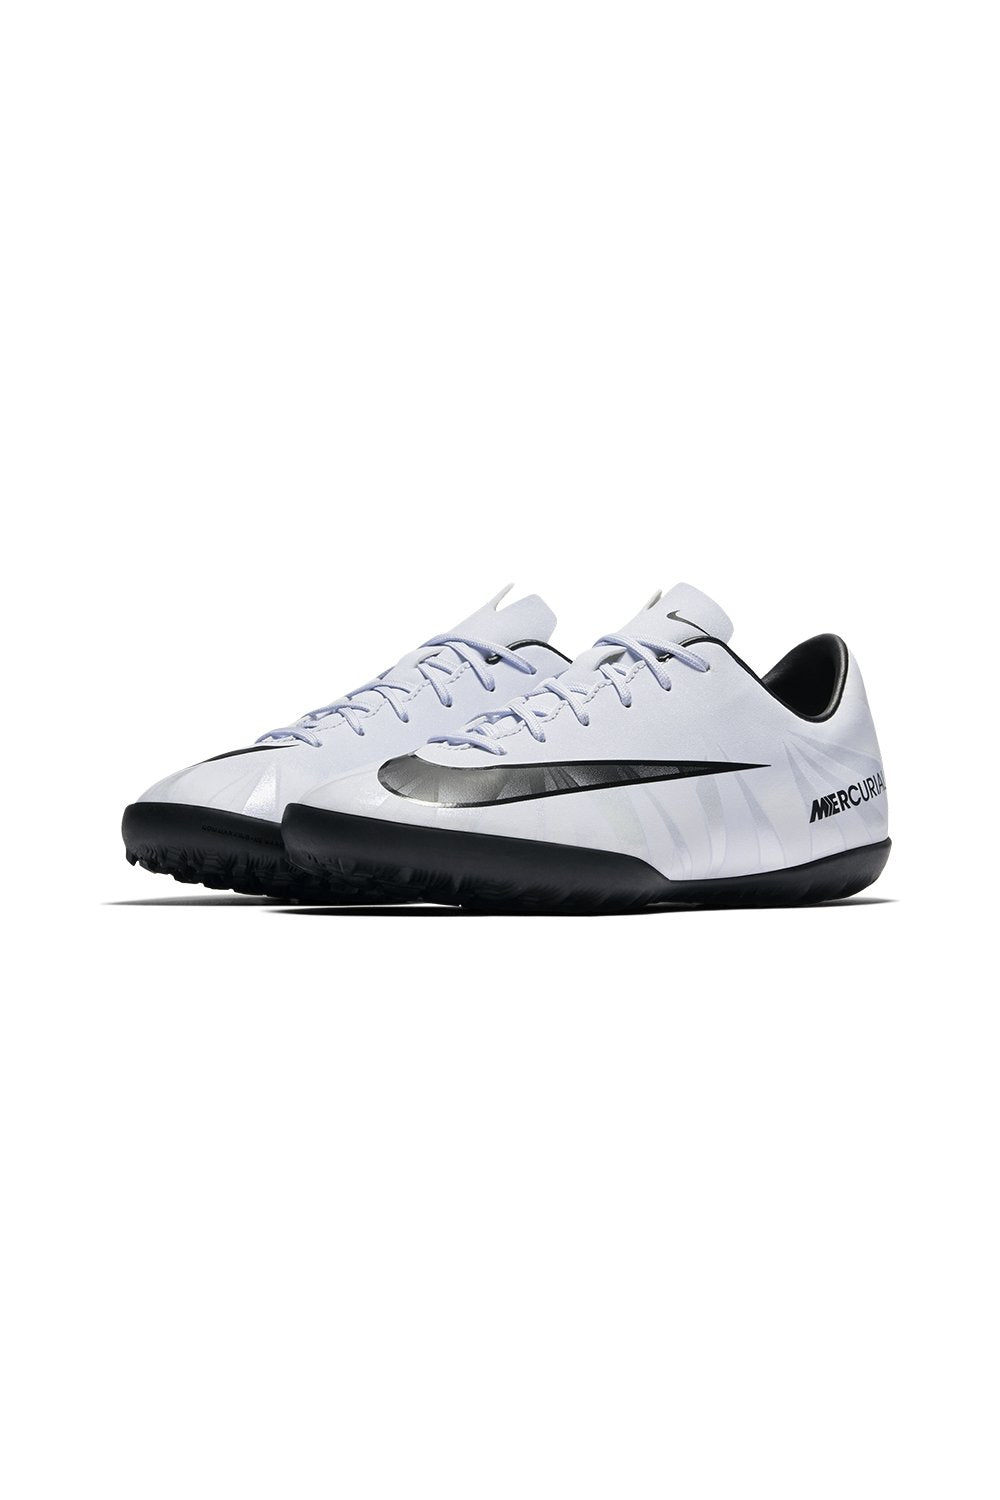 f905abb9dd0 Youth MercurialX Victory VI CR7 TF by Nike at Gazelle Sports ...